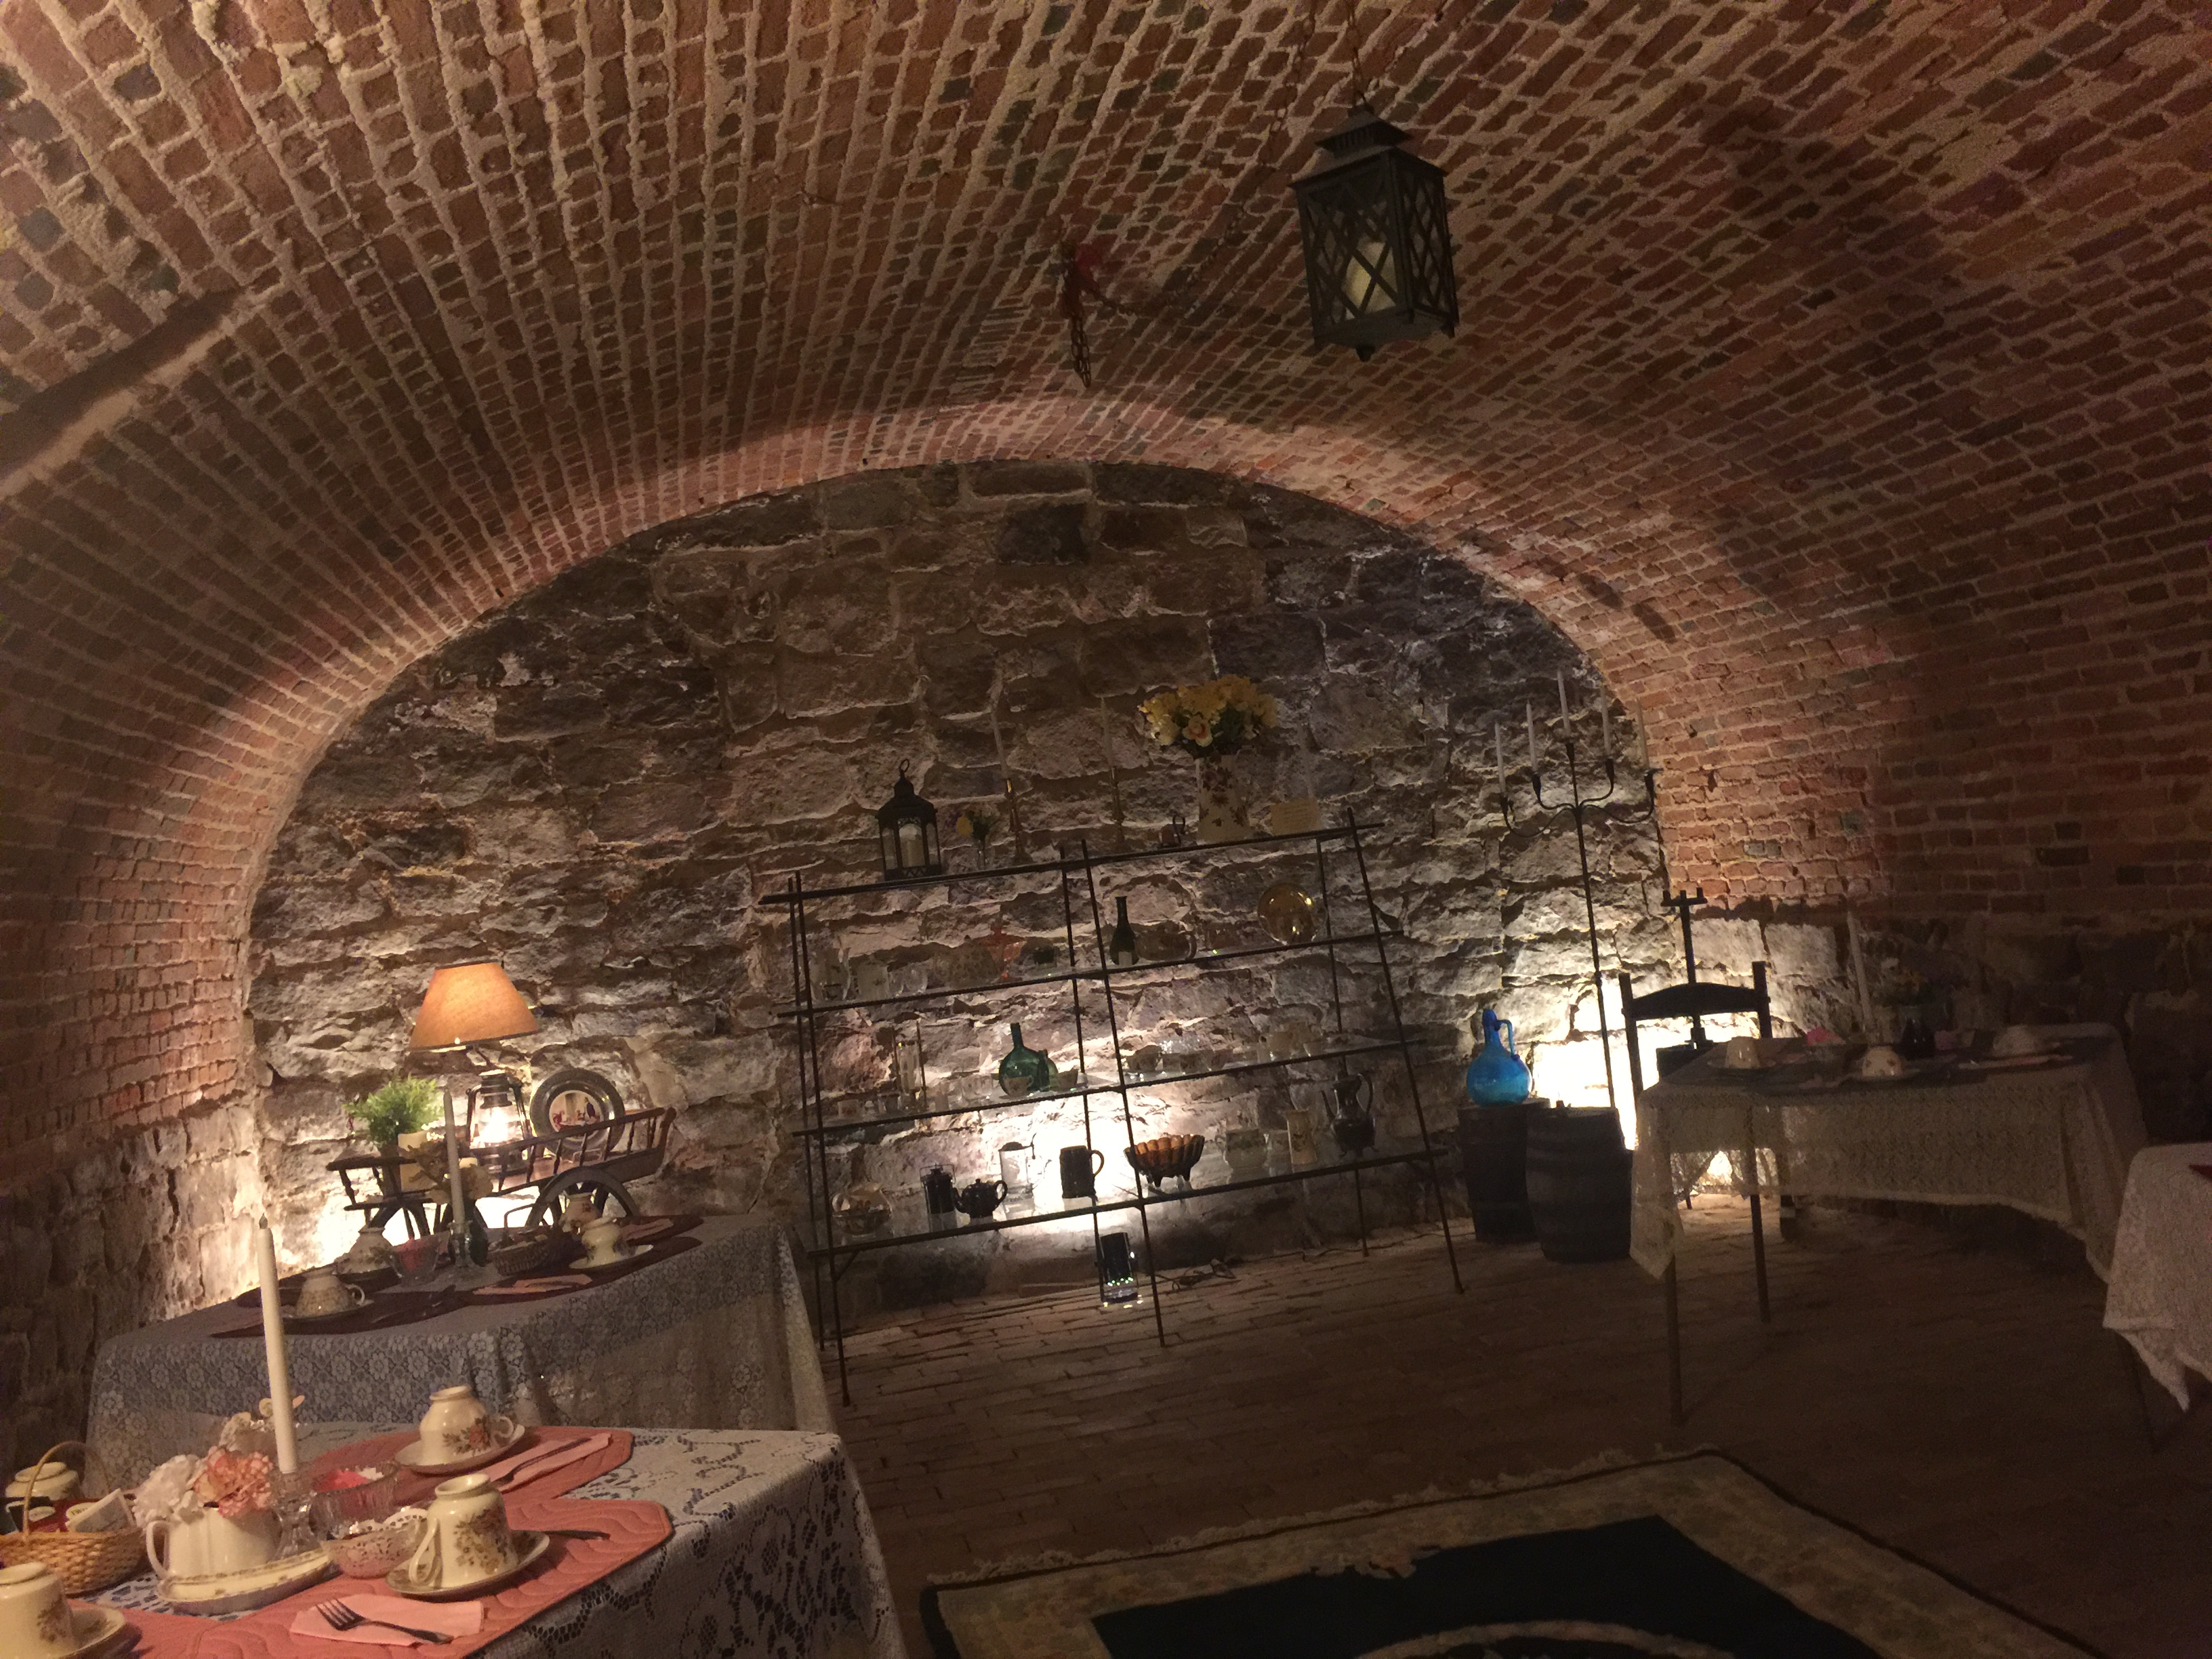 Original wine cellar which is key element of structure's foundation and used for tea service on Wednesday afternoons.